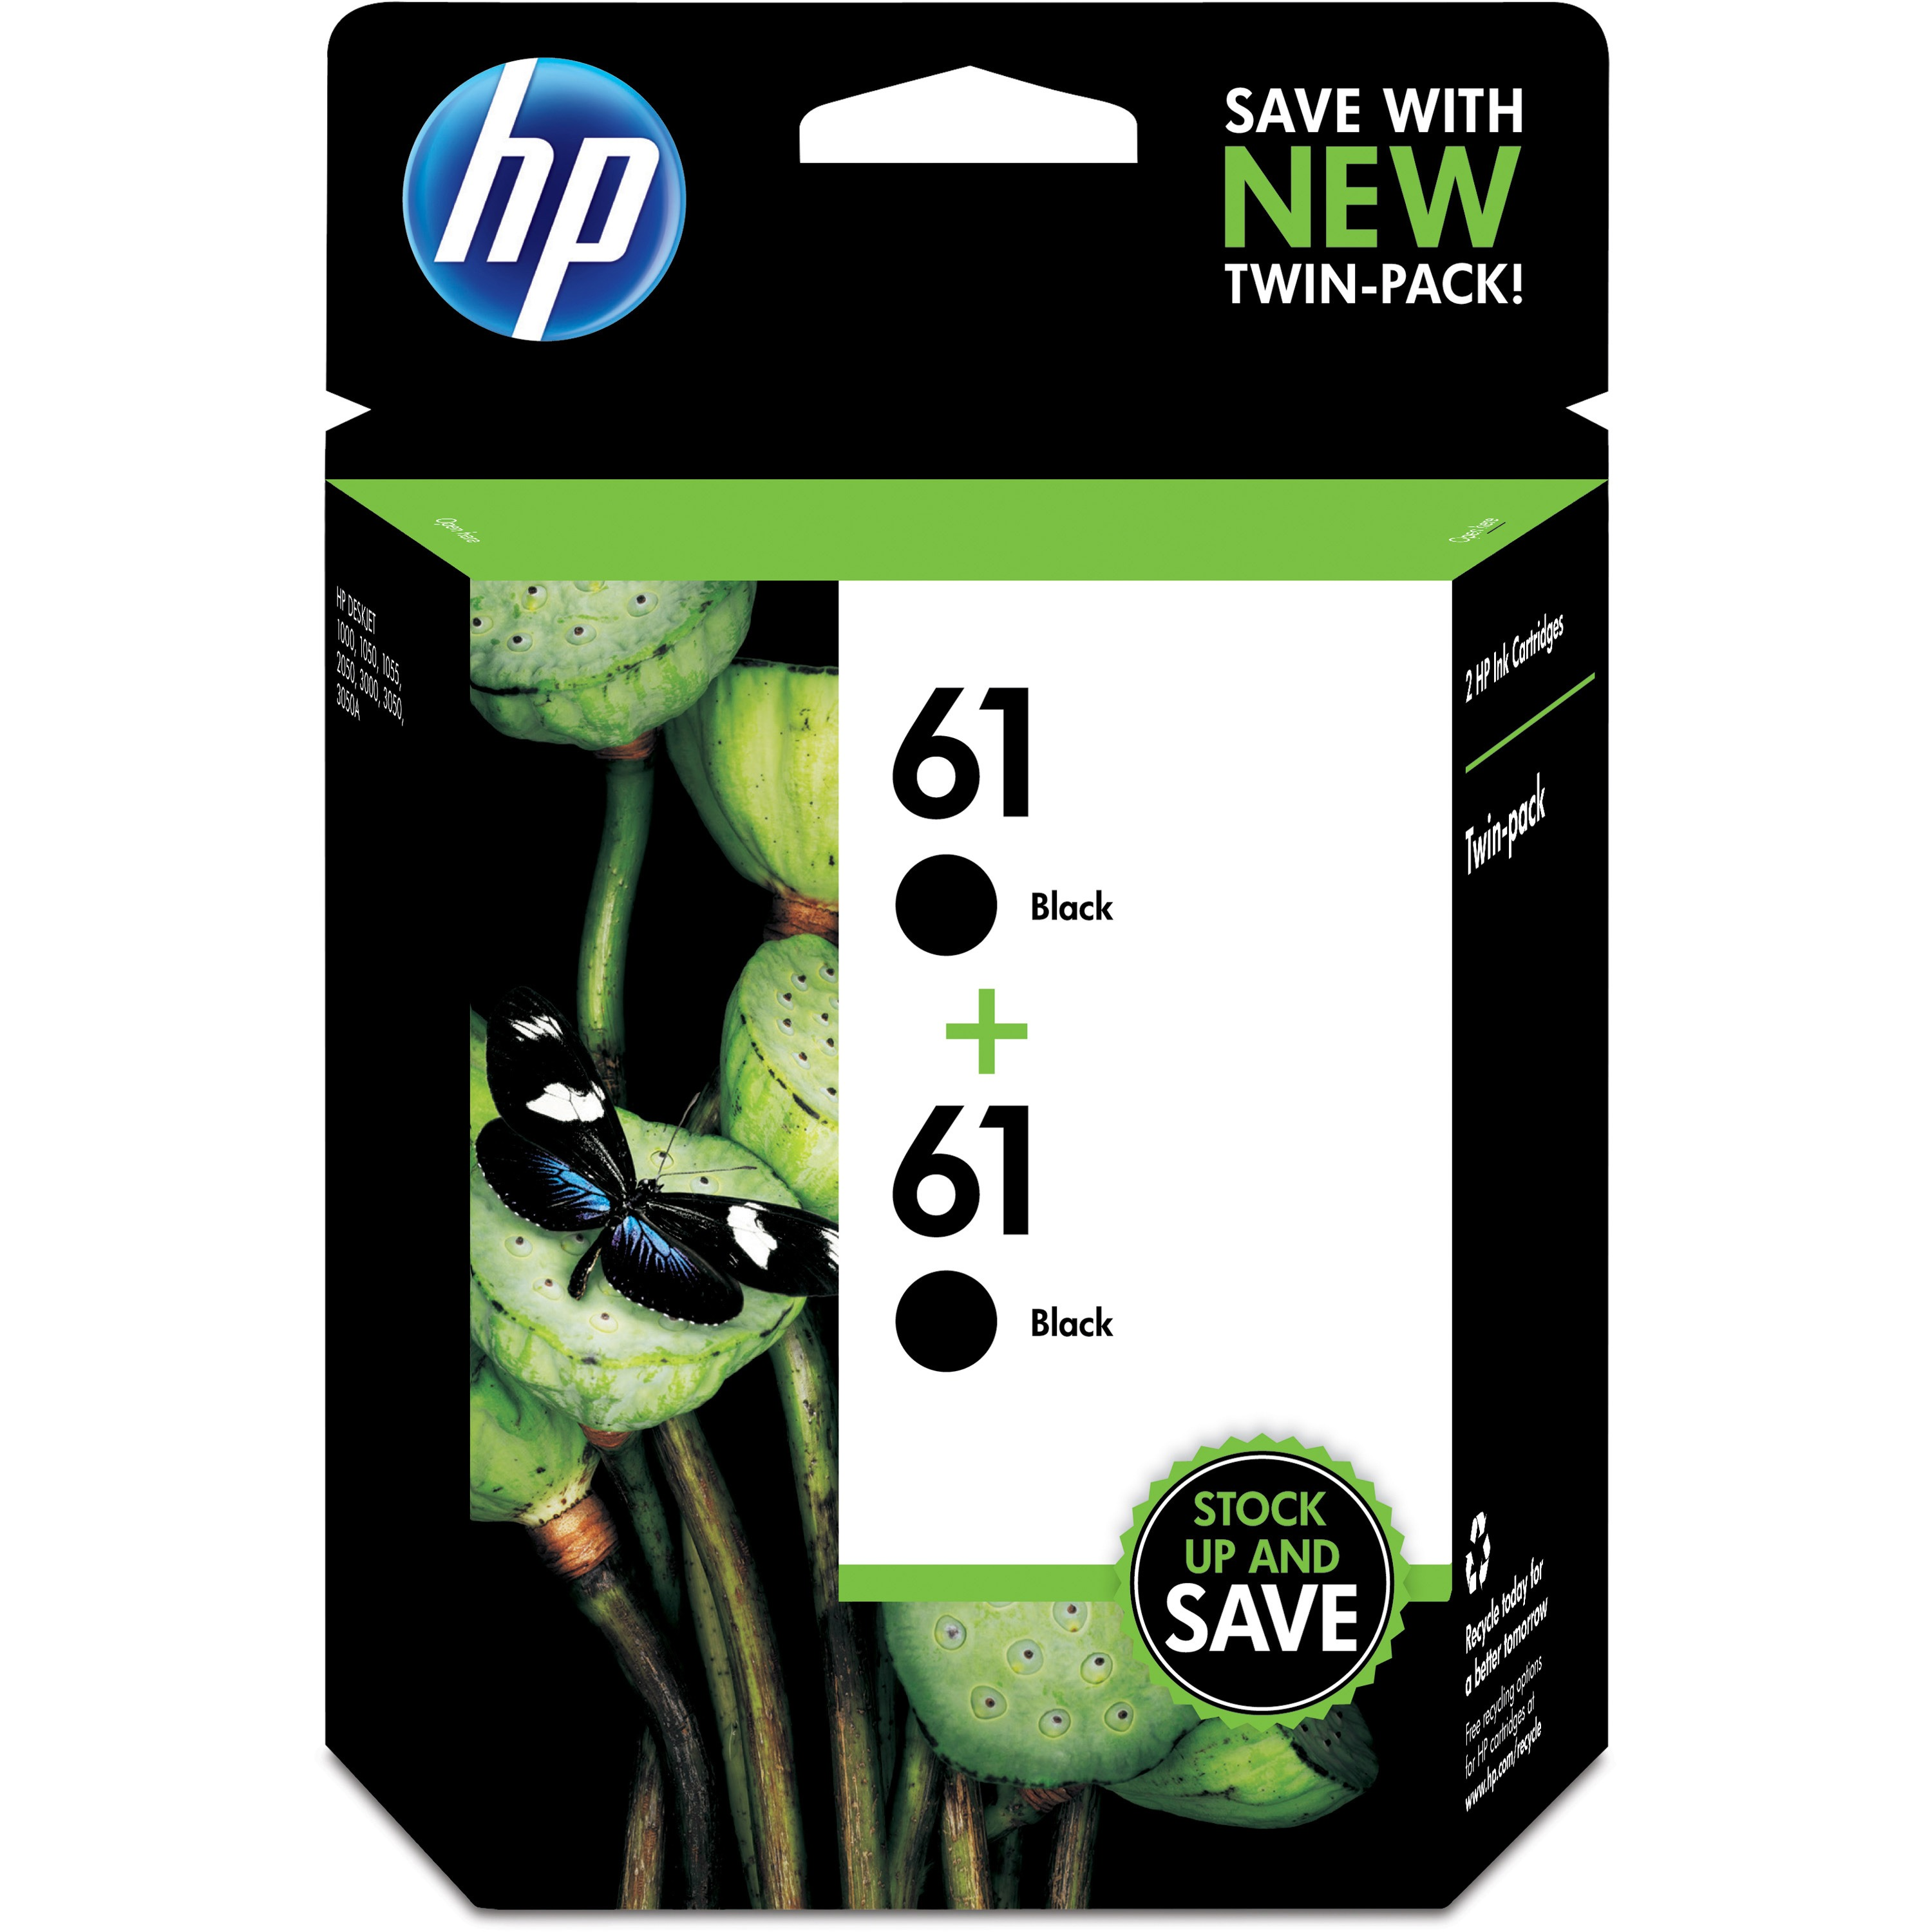 HP 61 Black ink cartridges, 2-pack (CZ073FN)